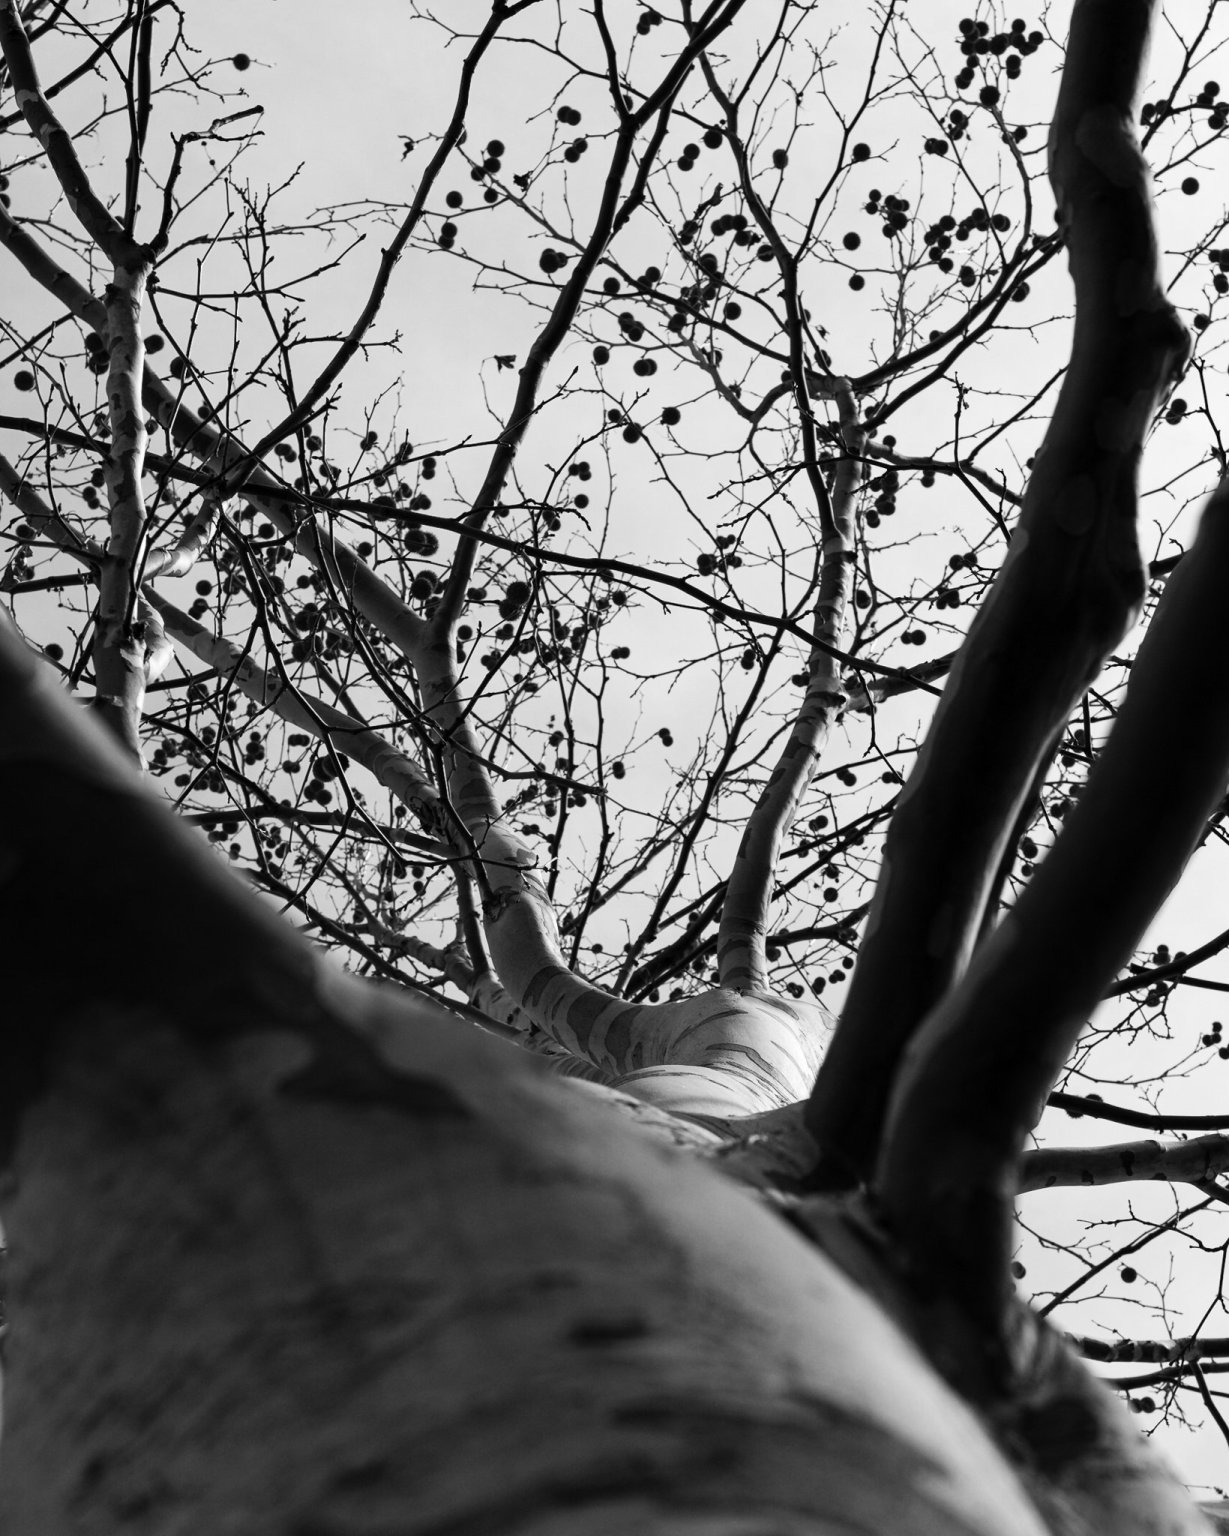 Looking up the trunk of a busy, monochrome plane tree